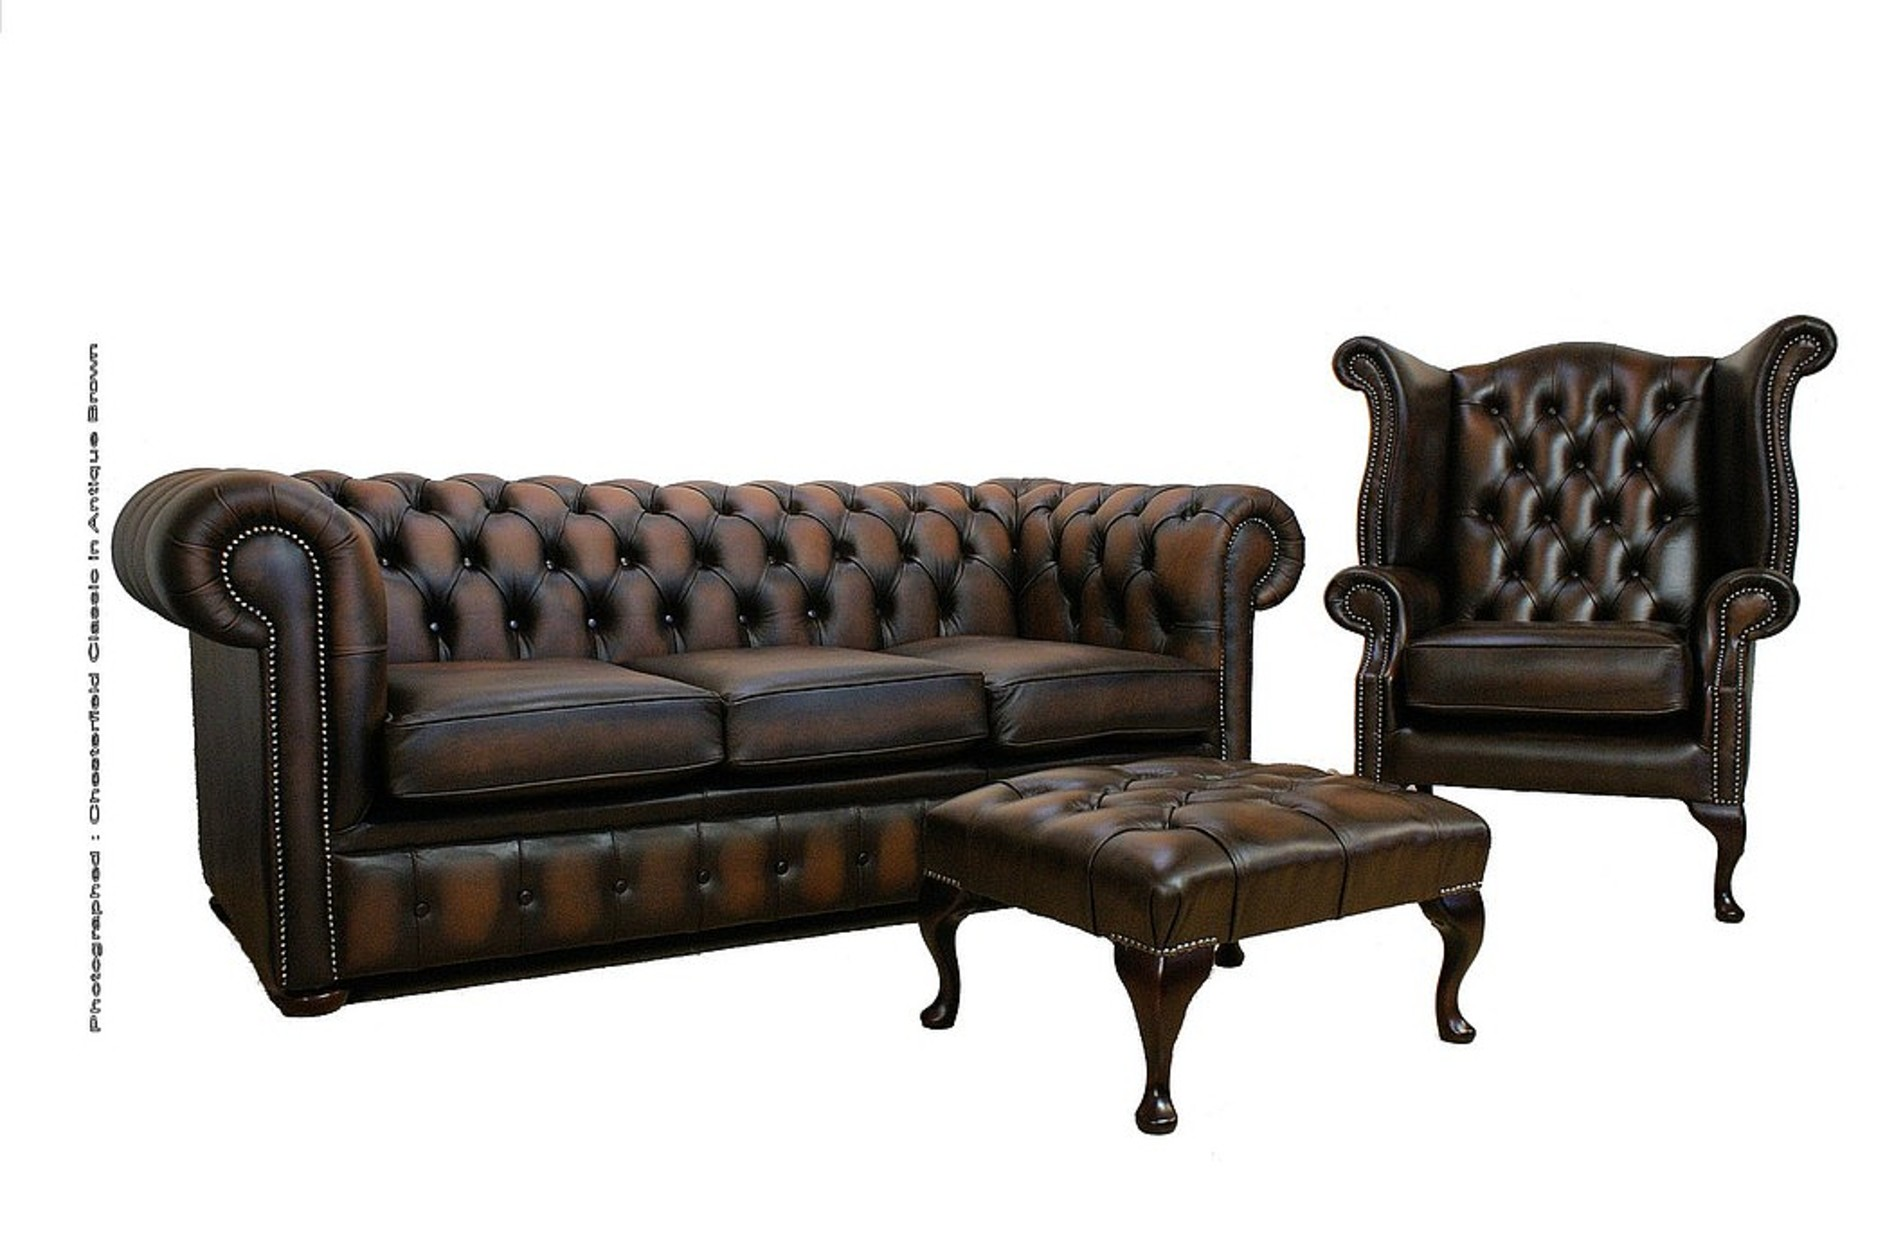 Chesterfield Leather Sofa Suite 3 + 1 + Footstool Antique Brown, Leather  Sofas, Traditional Sofas